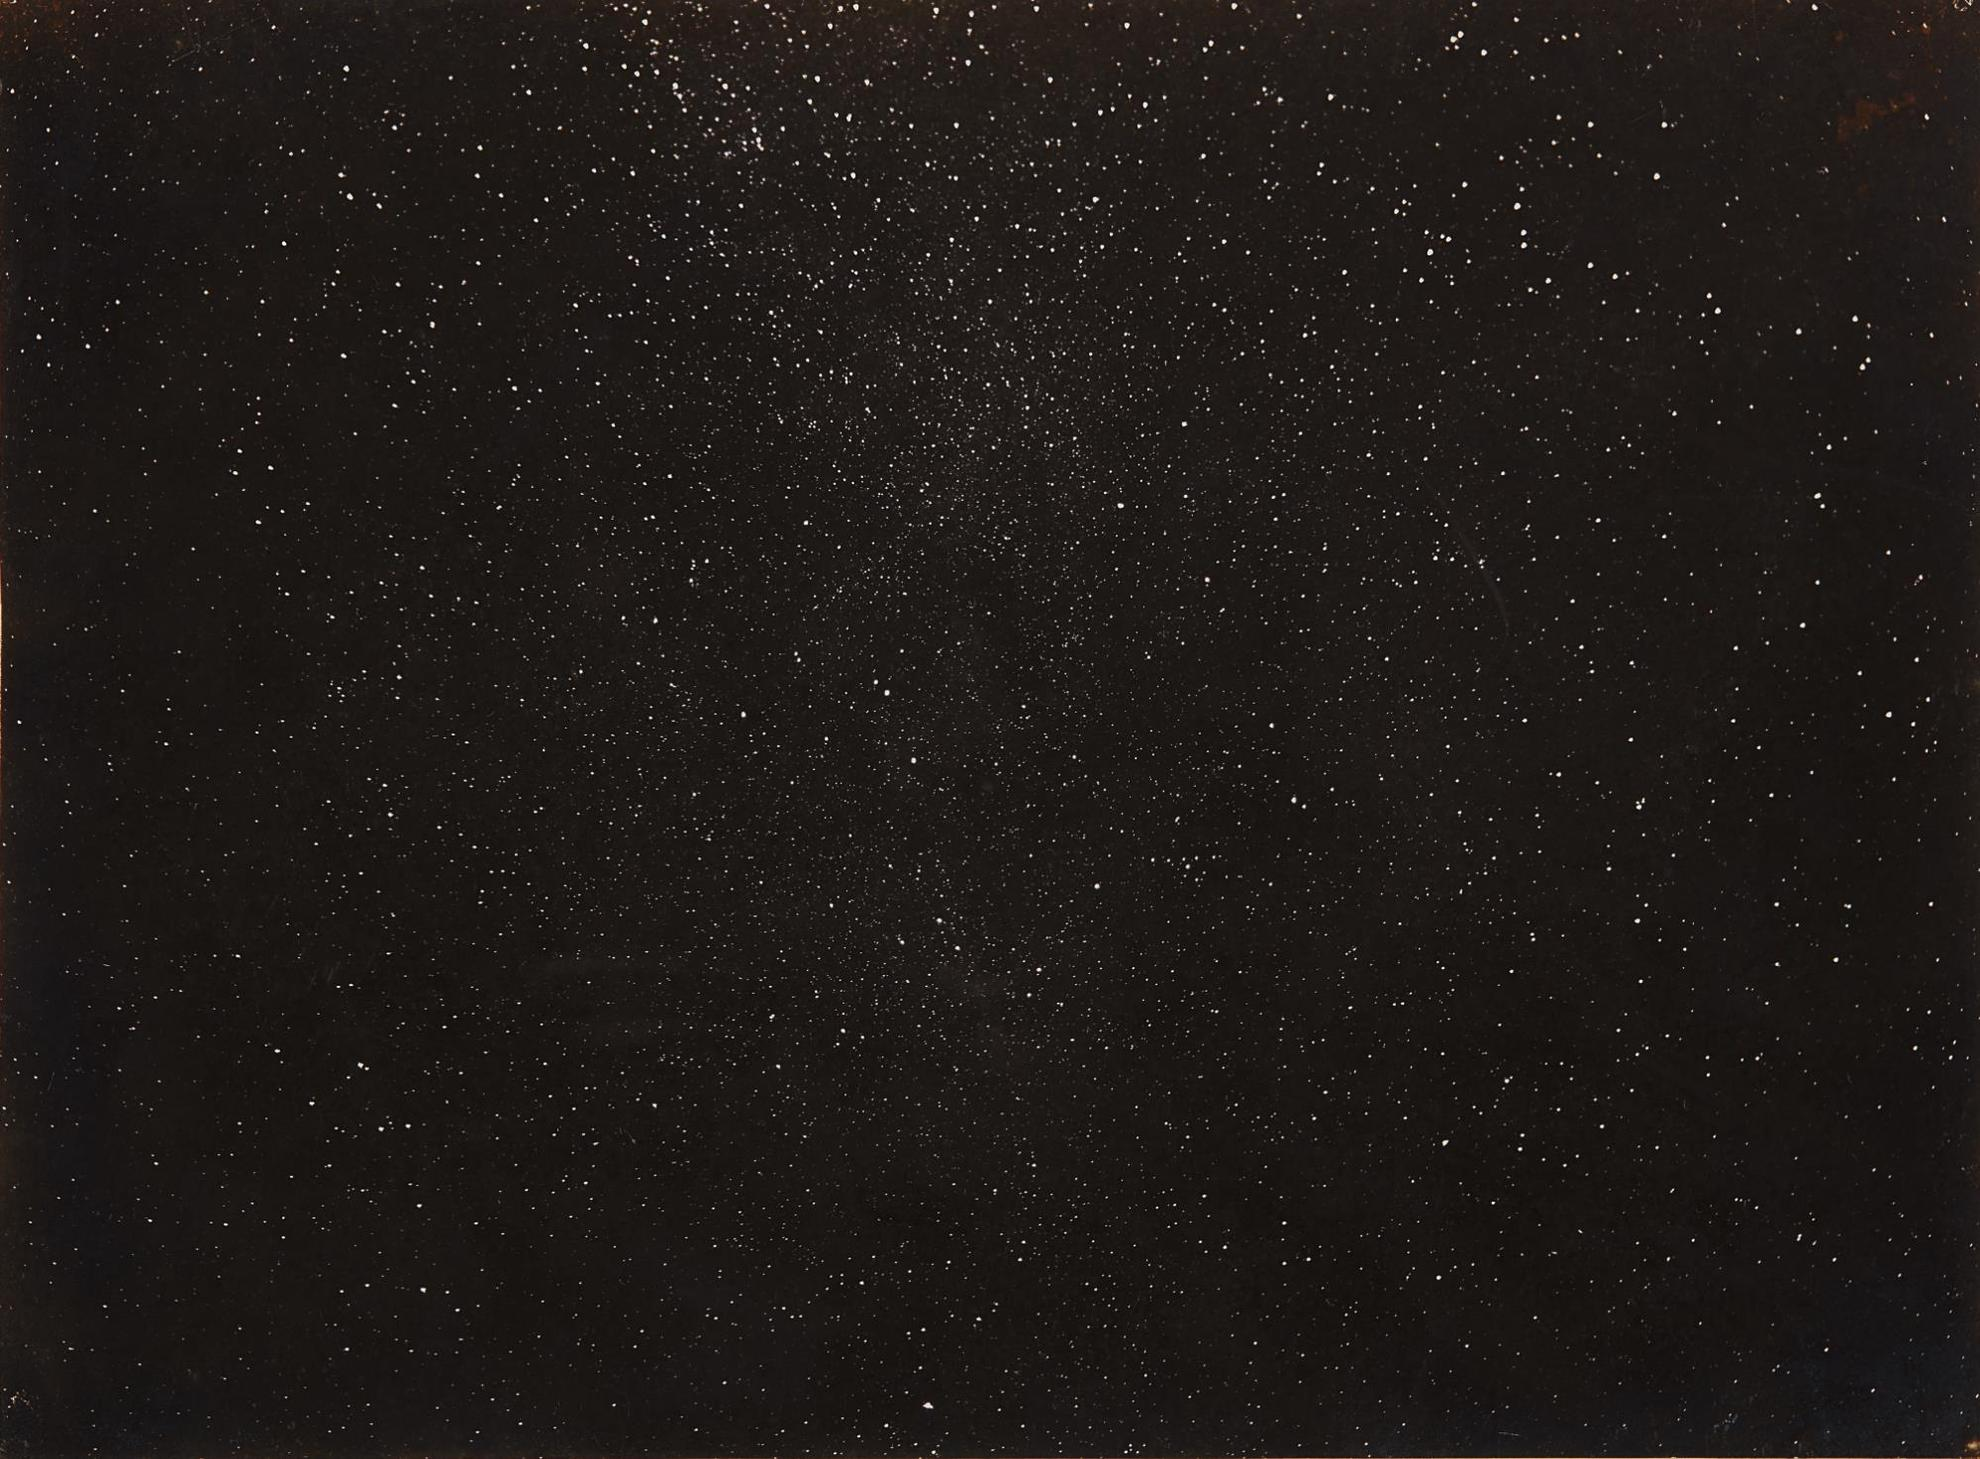 J. Milton Offord - The Milky Way In Sagitta, Aguila, Vulpecula & Lyra, July 22, 1901, 2 Hour Exposure-1901